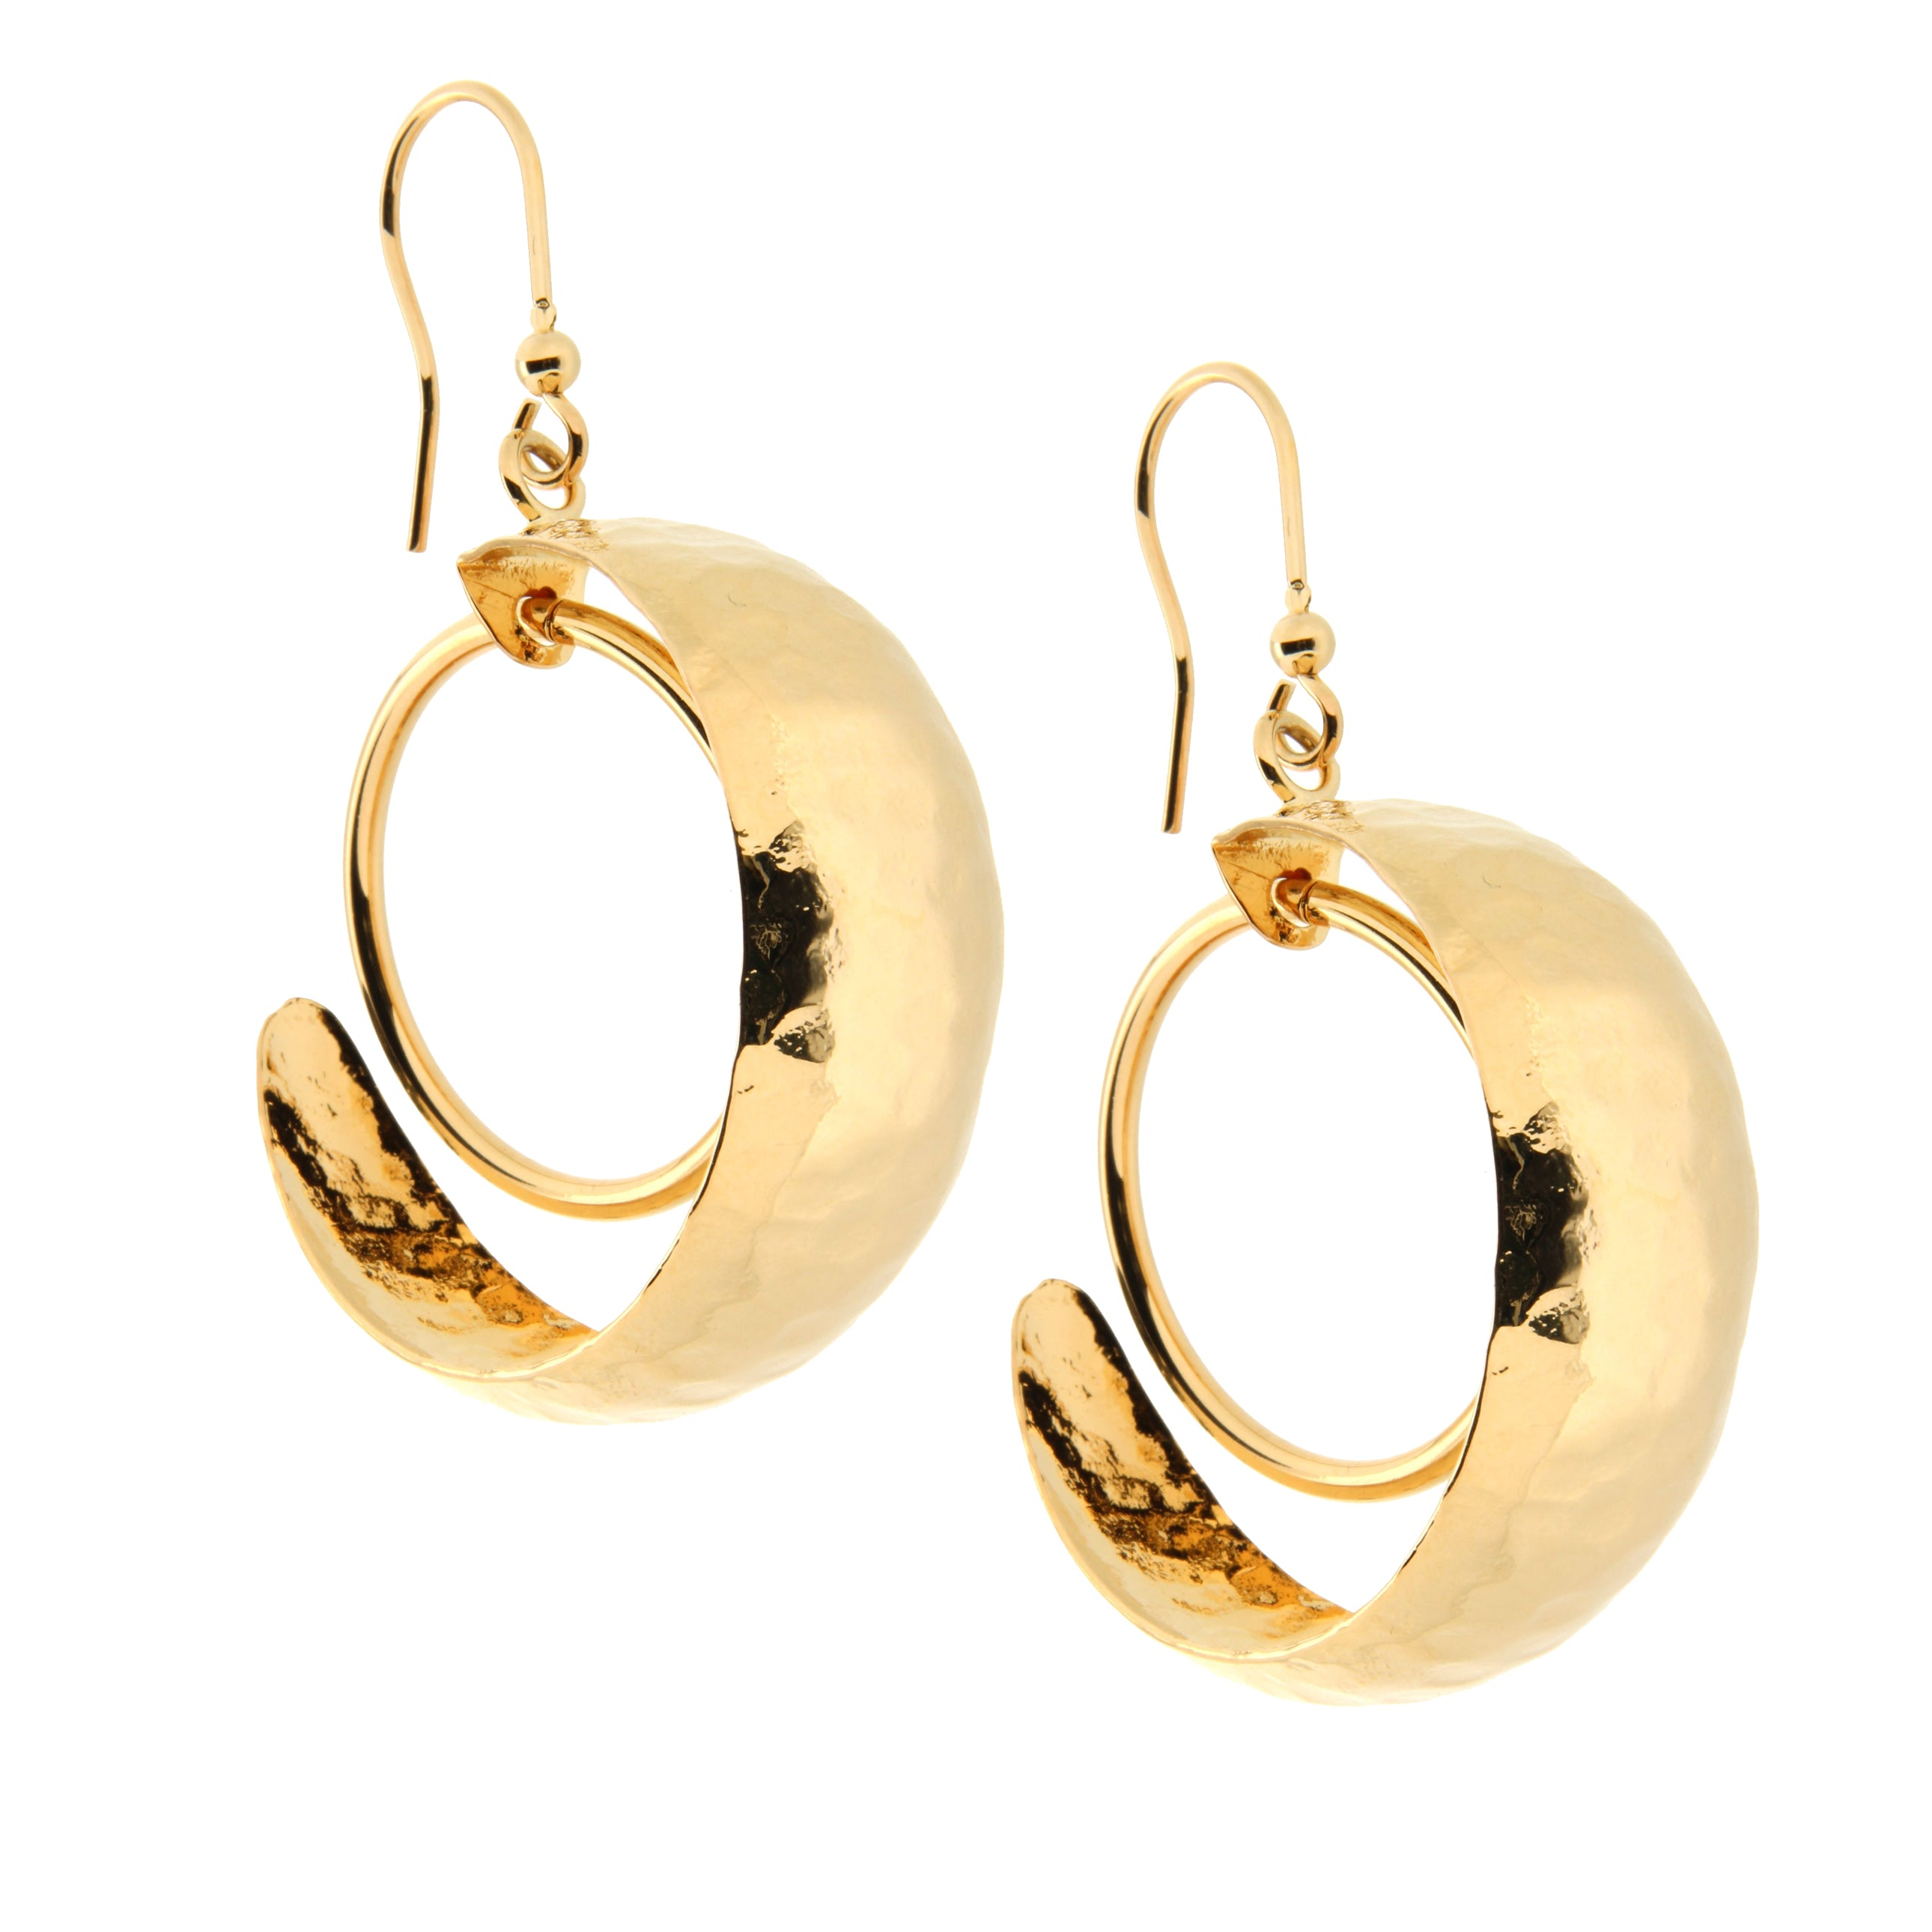 Forever Last 18k Gold Plated Women's Drop With Loop Earrings